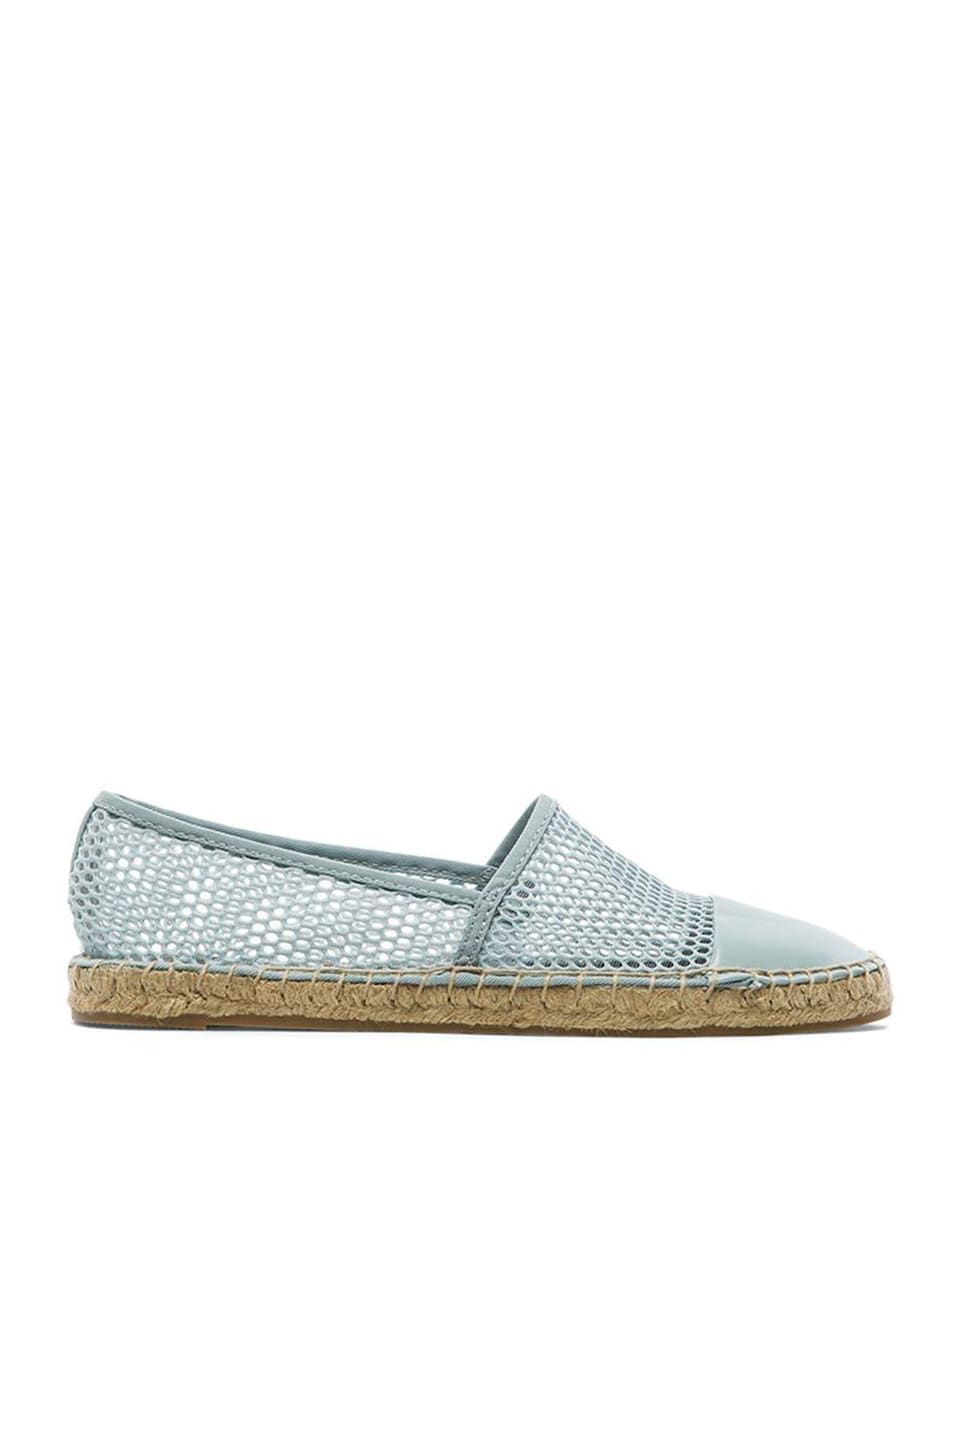 Circus by Sam Edelman Lena Flat in Cool Blue